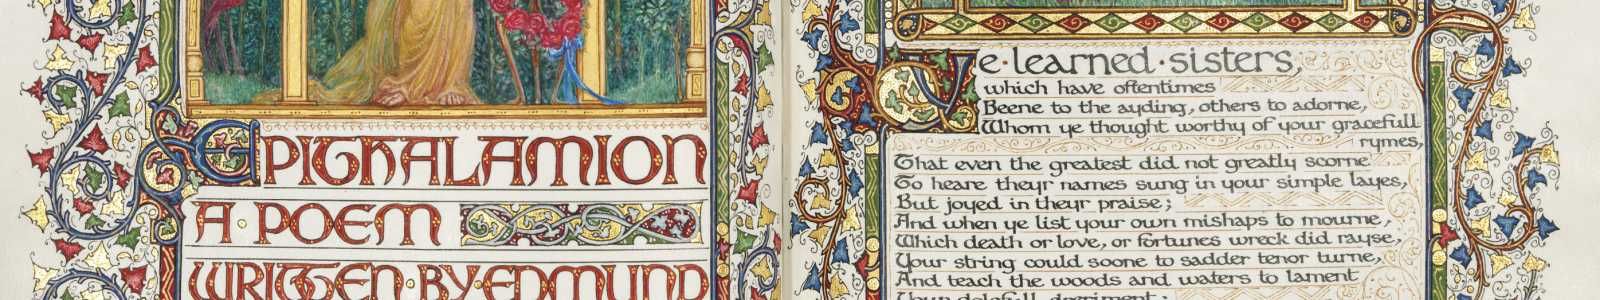 Books, Manuscripts, Photographs: From the Middle Ages to the Moon